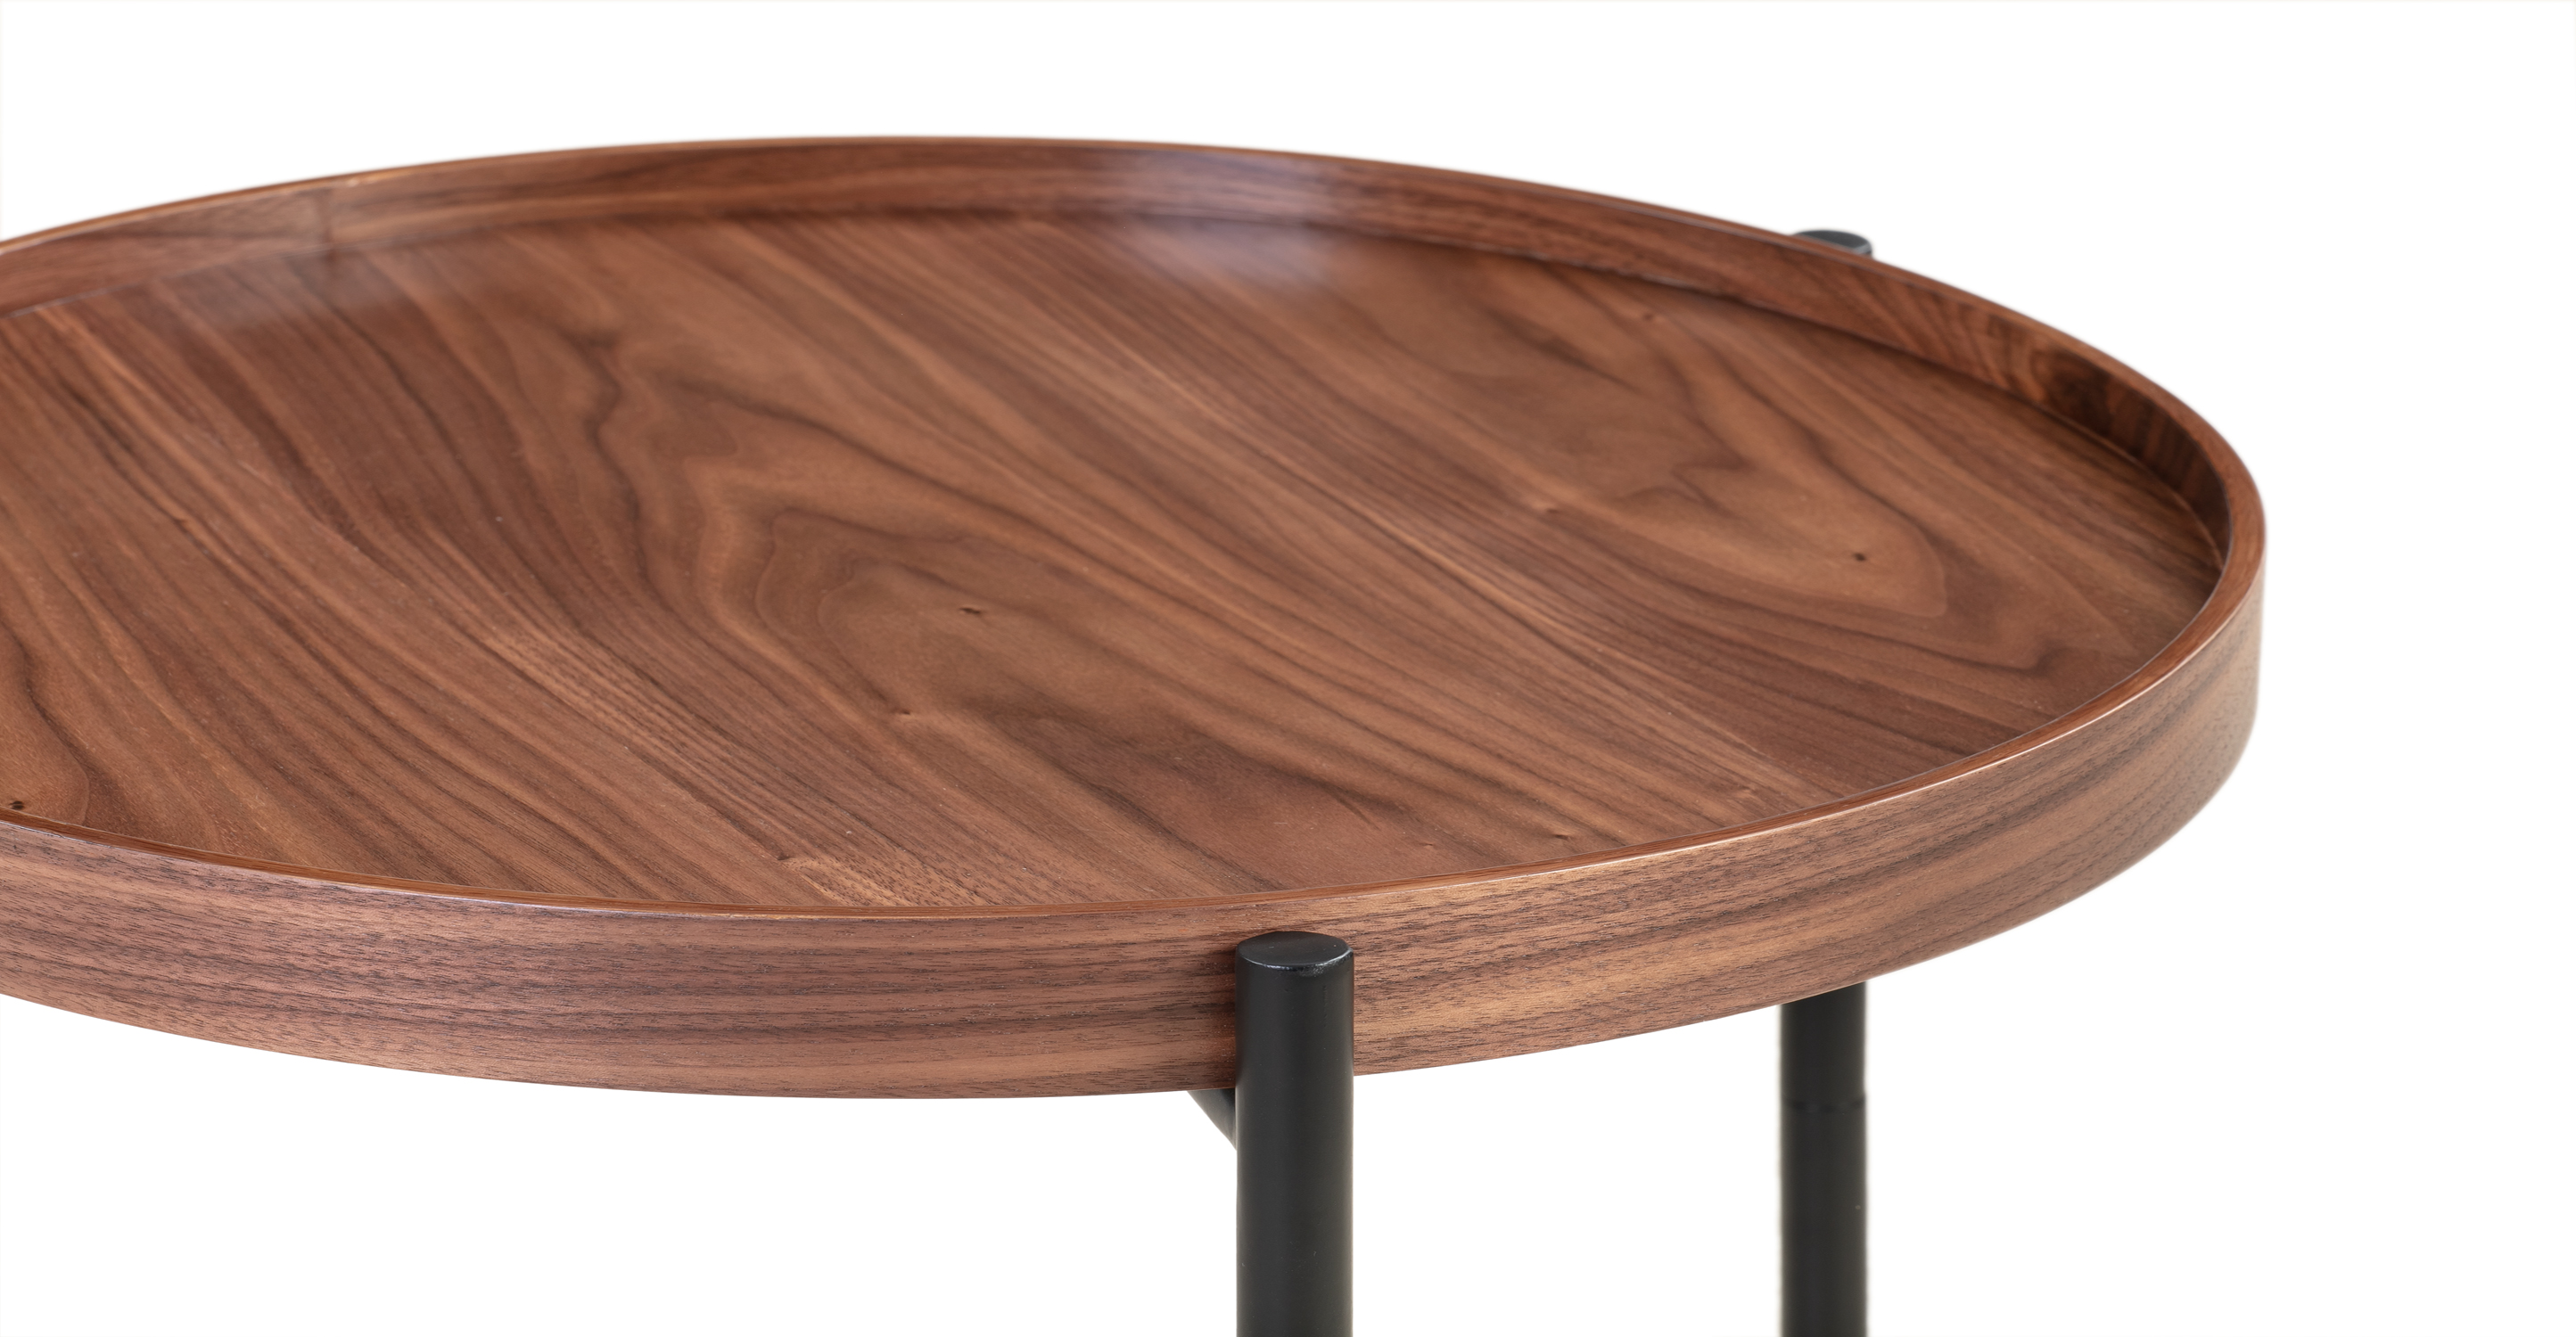 "Swell 19"" Tray Side Table, Walnut"